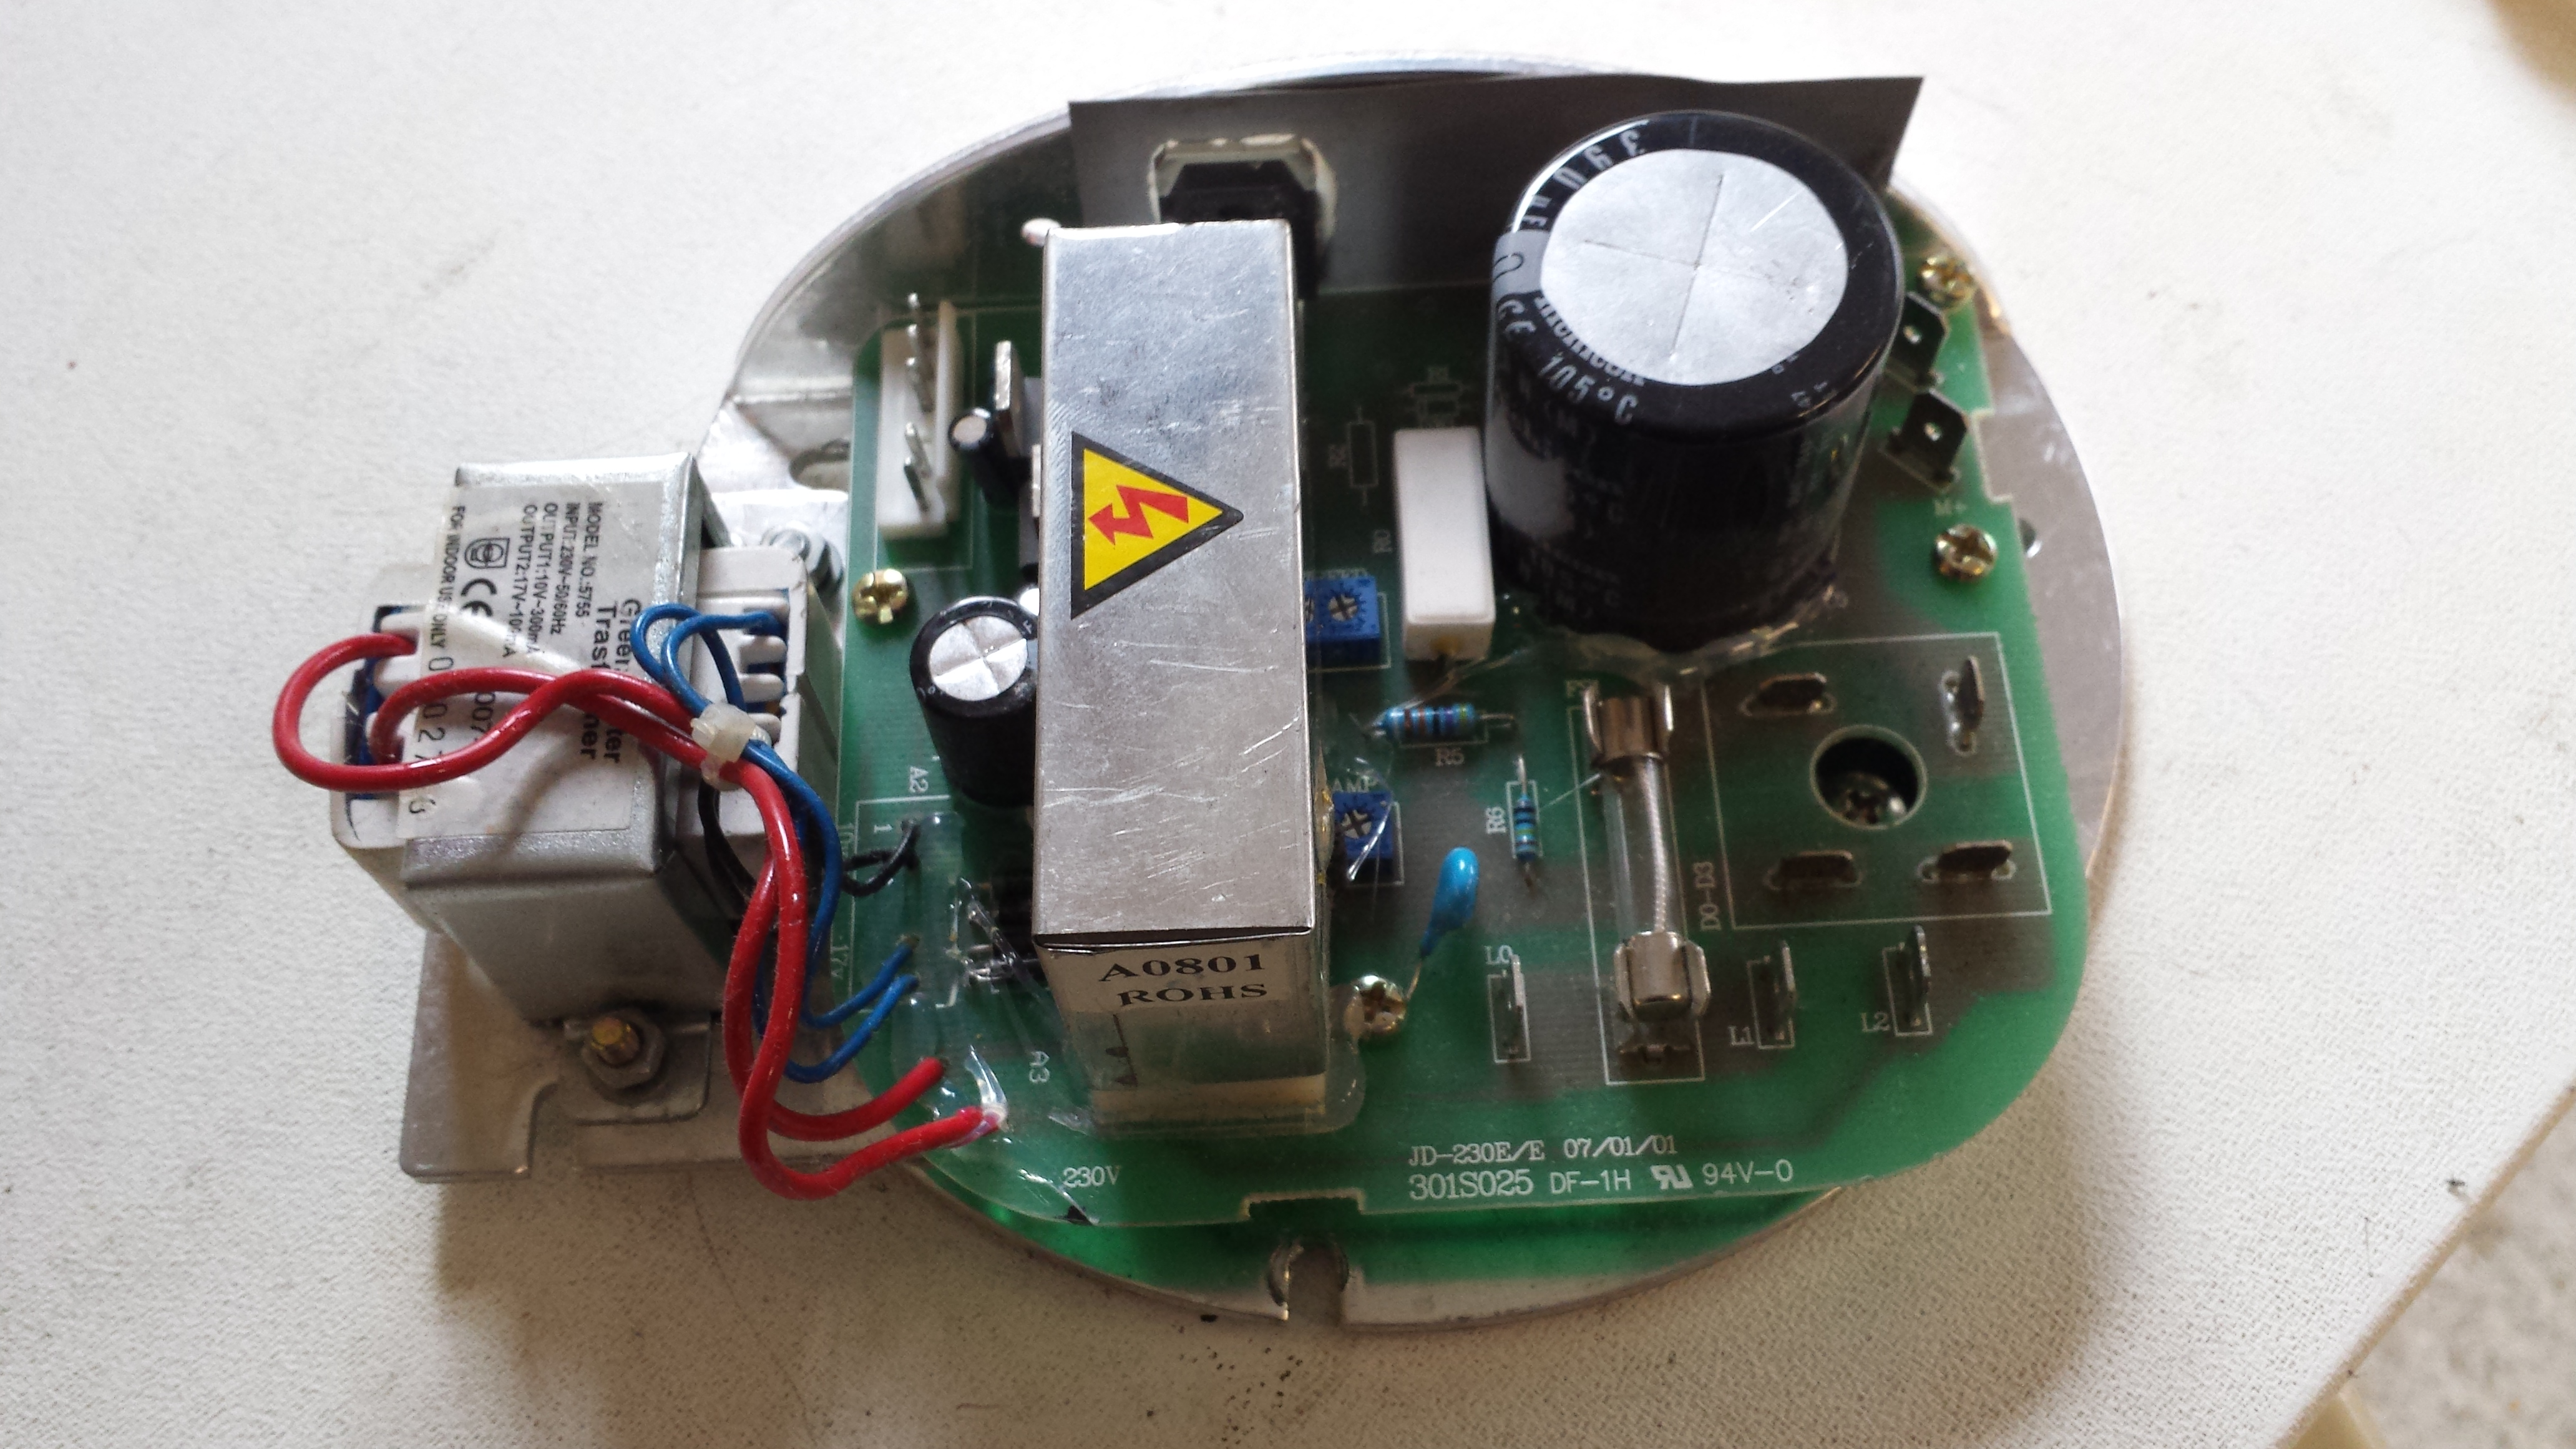 Treadmill Repairs Motor Control Boards Repaired Reconditioned Electronic Circuit Contol Repair